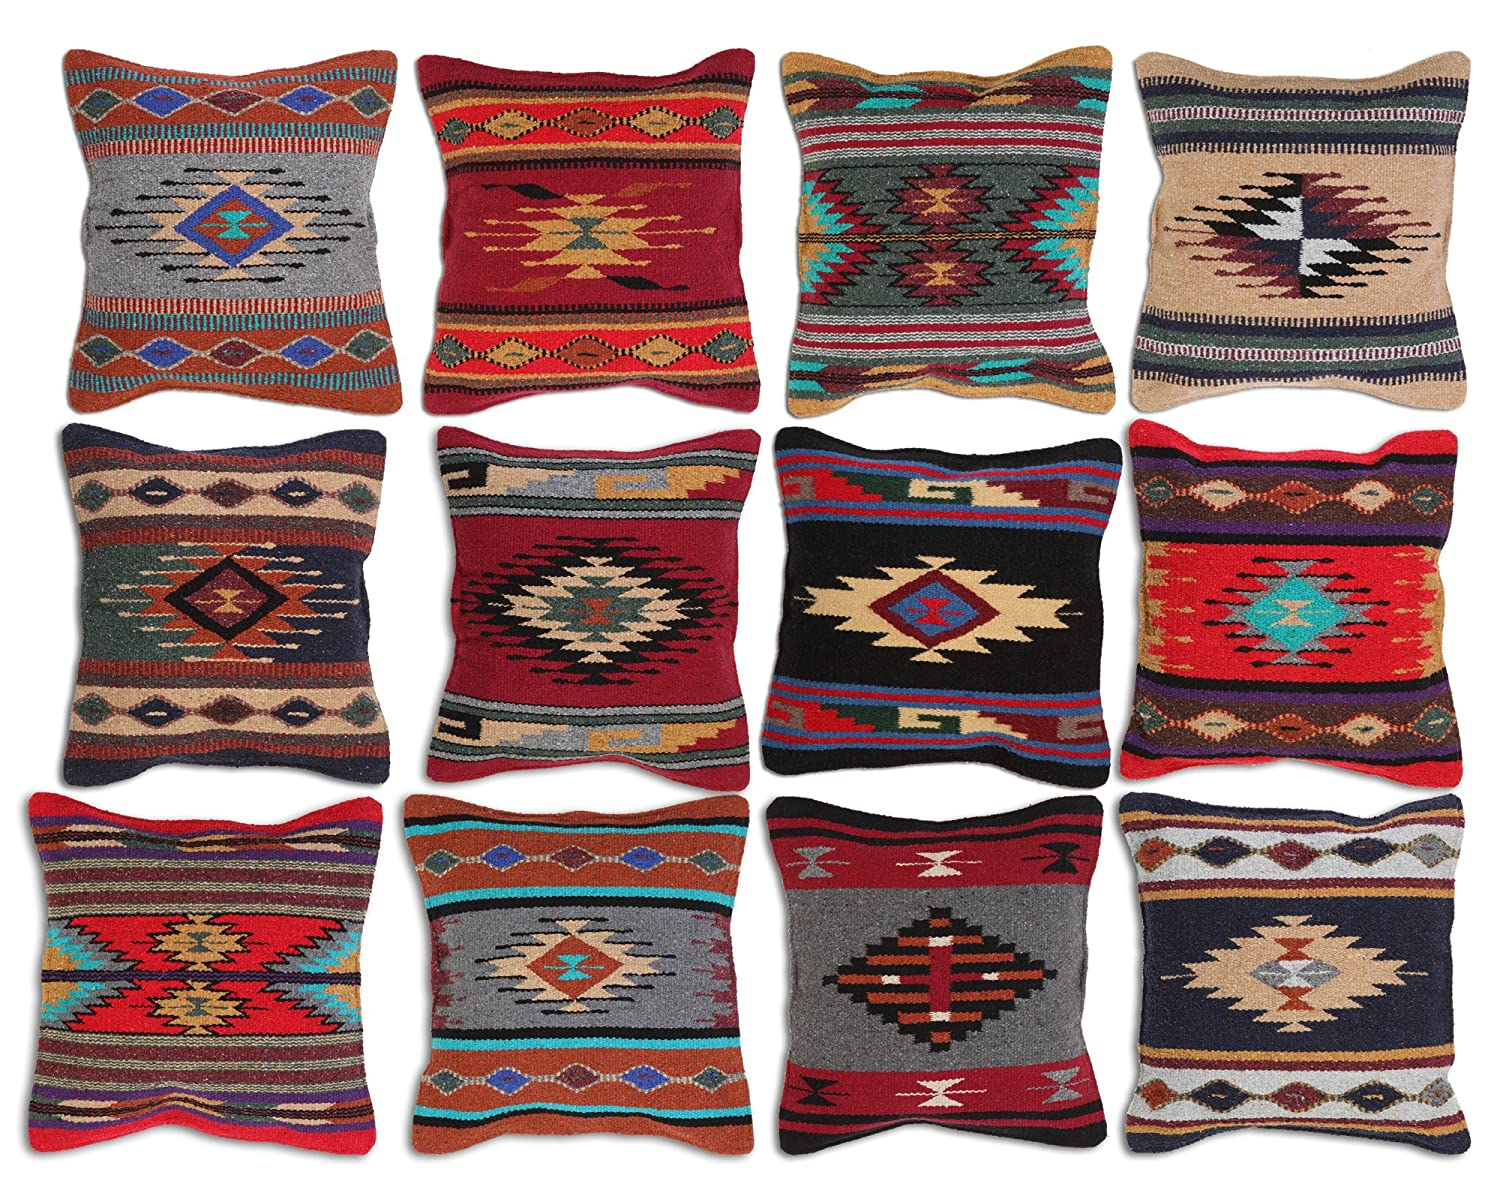 Amazon.com: Aztec Throw Pillow Covers, 18 X 18, Hand Woven in ...